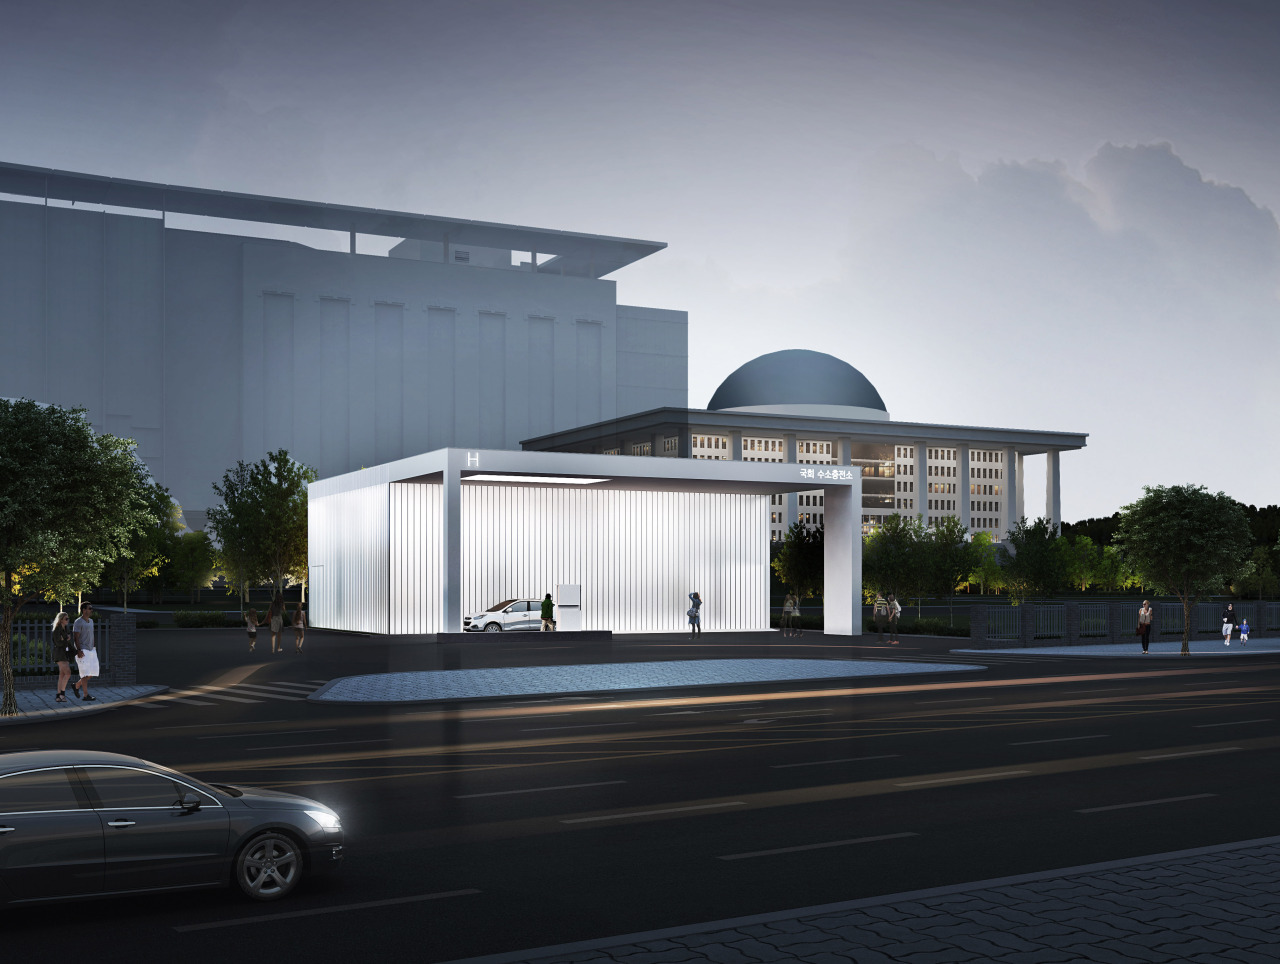 An artist's impression of the planned hydrogen station at the National Assembly (Hyundai Motor)